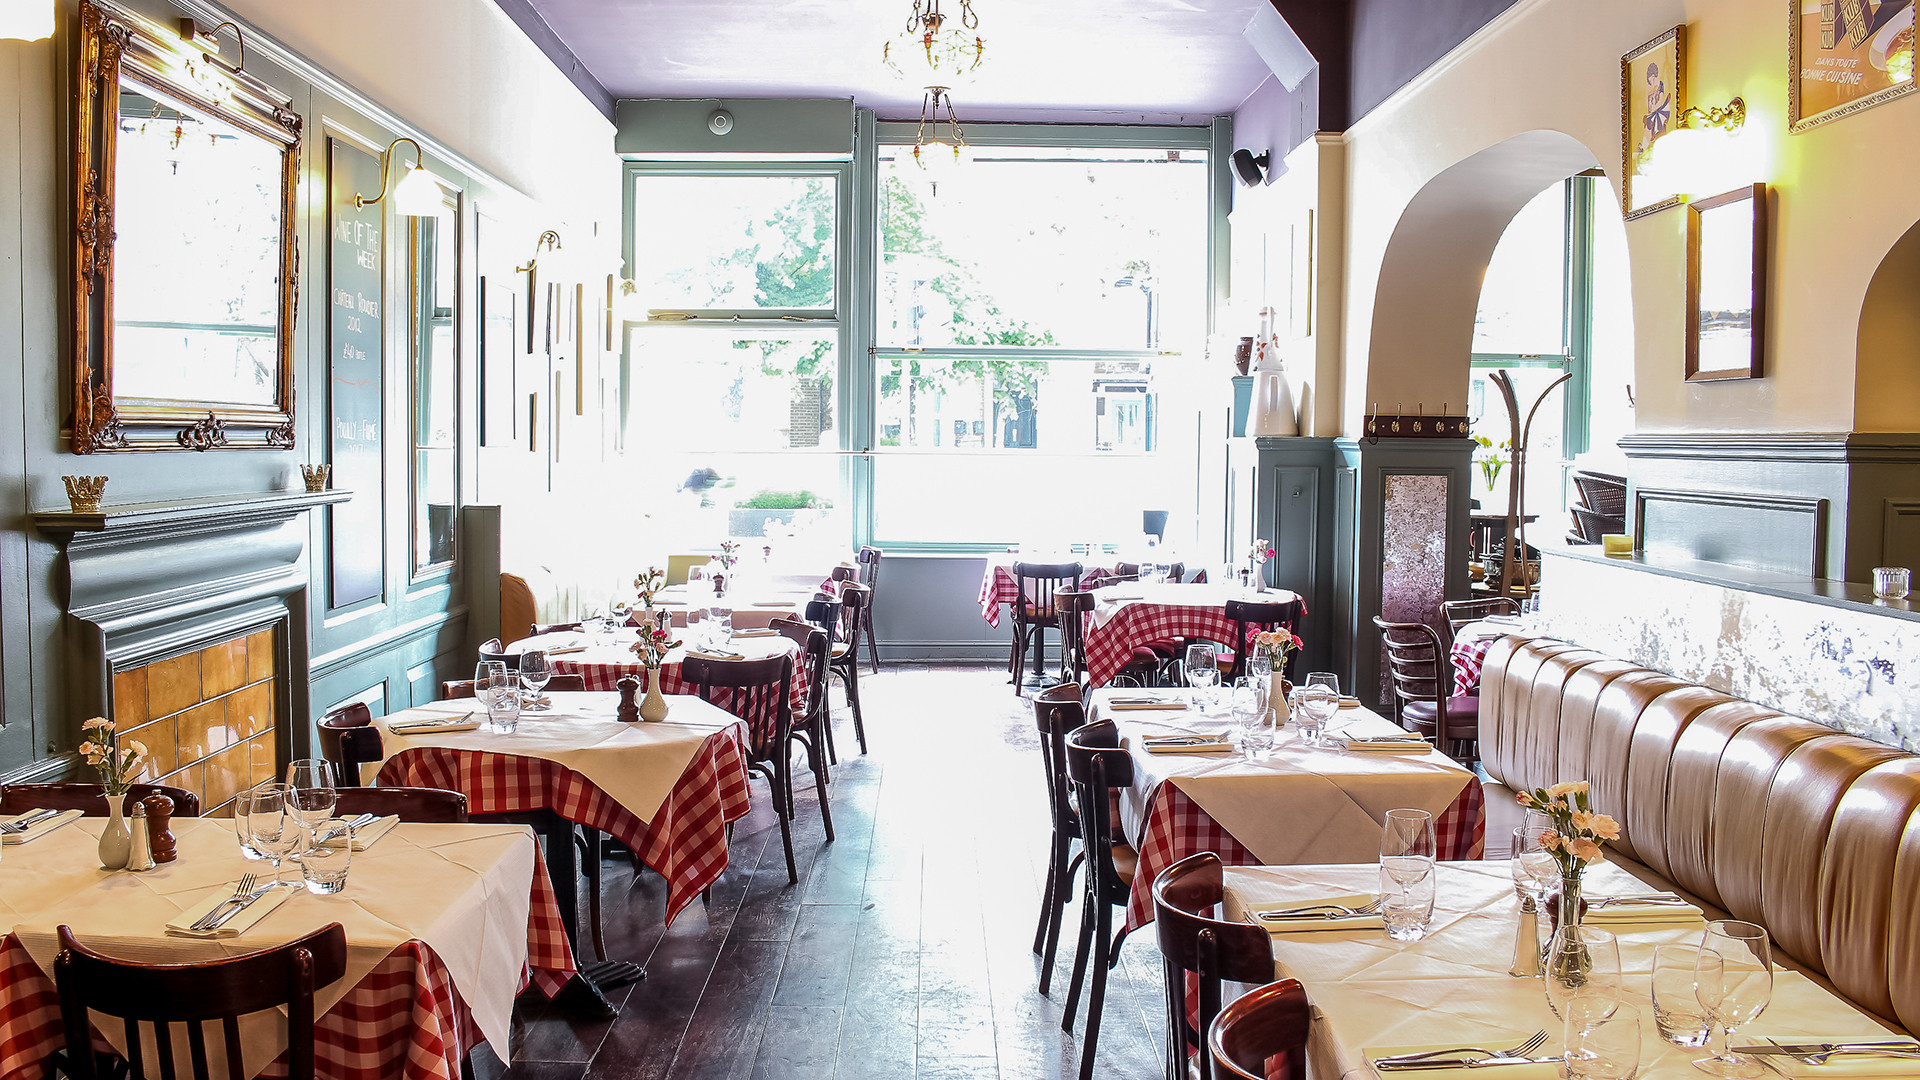 Shepherd's Bush Restaurants: Le Petit Citron